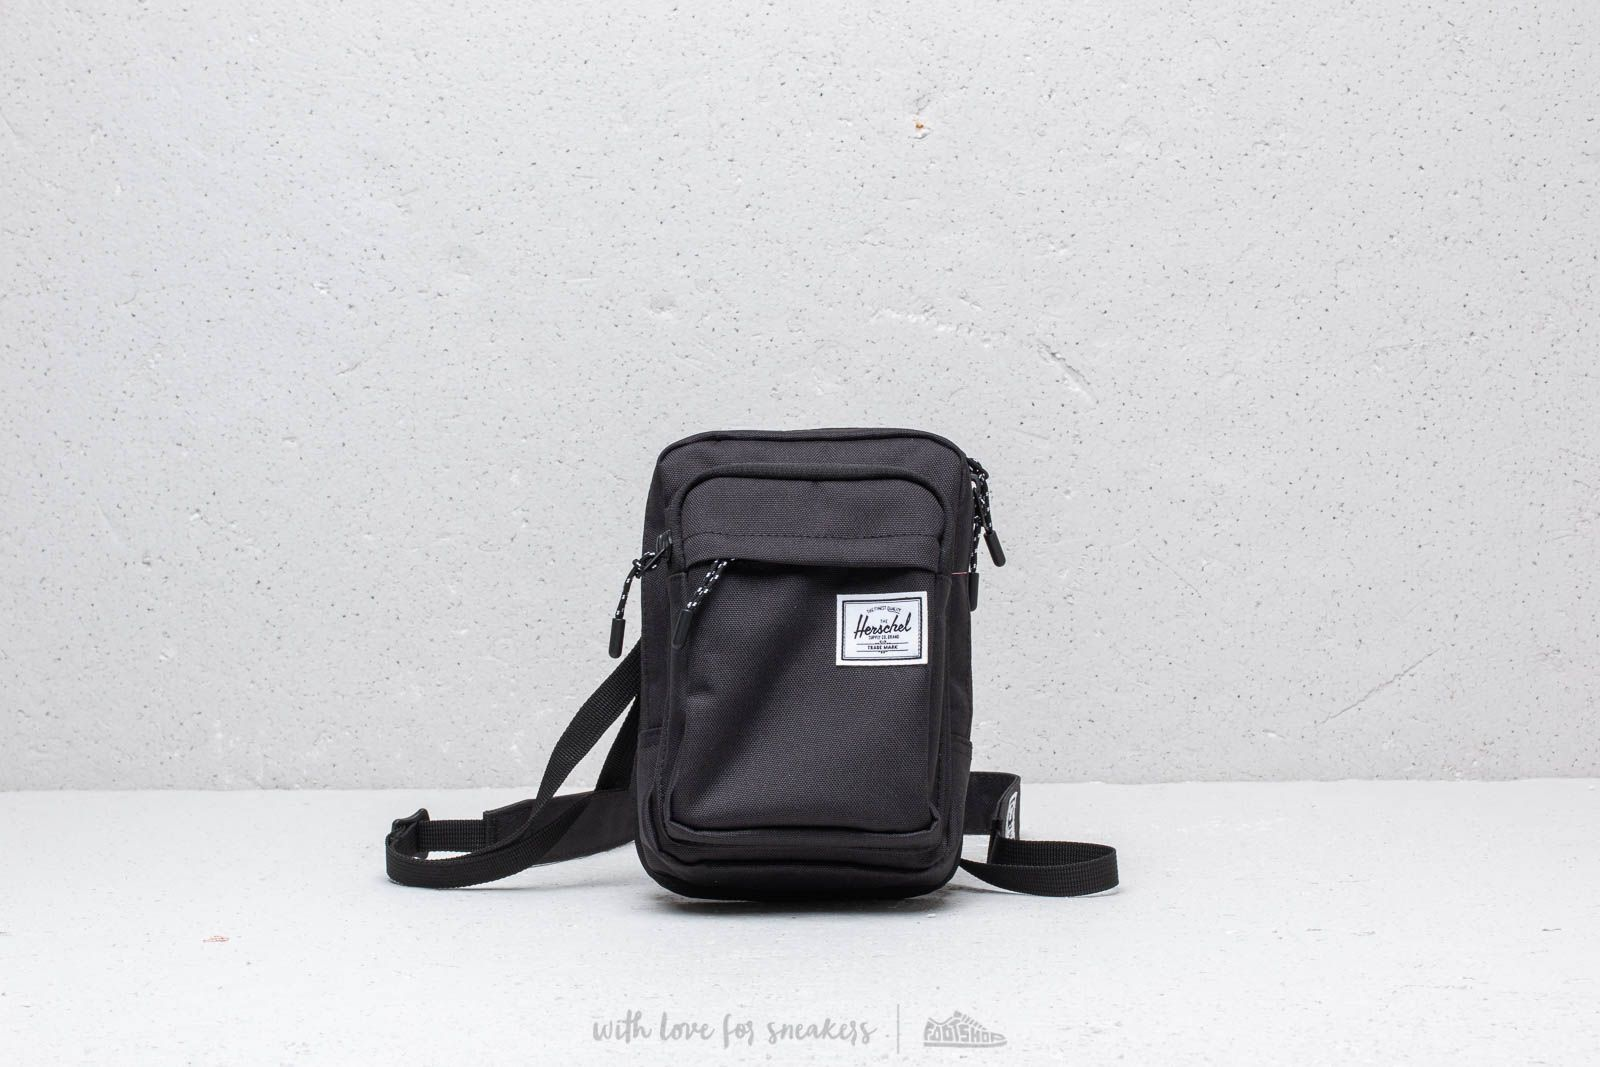 Herschel Supply Co. Form Large Crossbody Pack